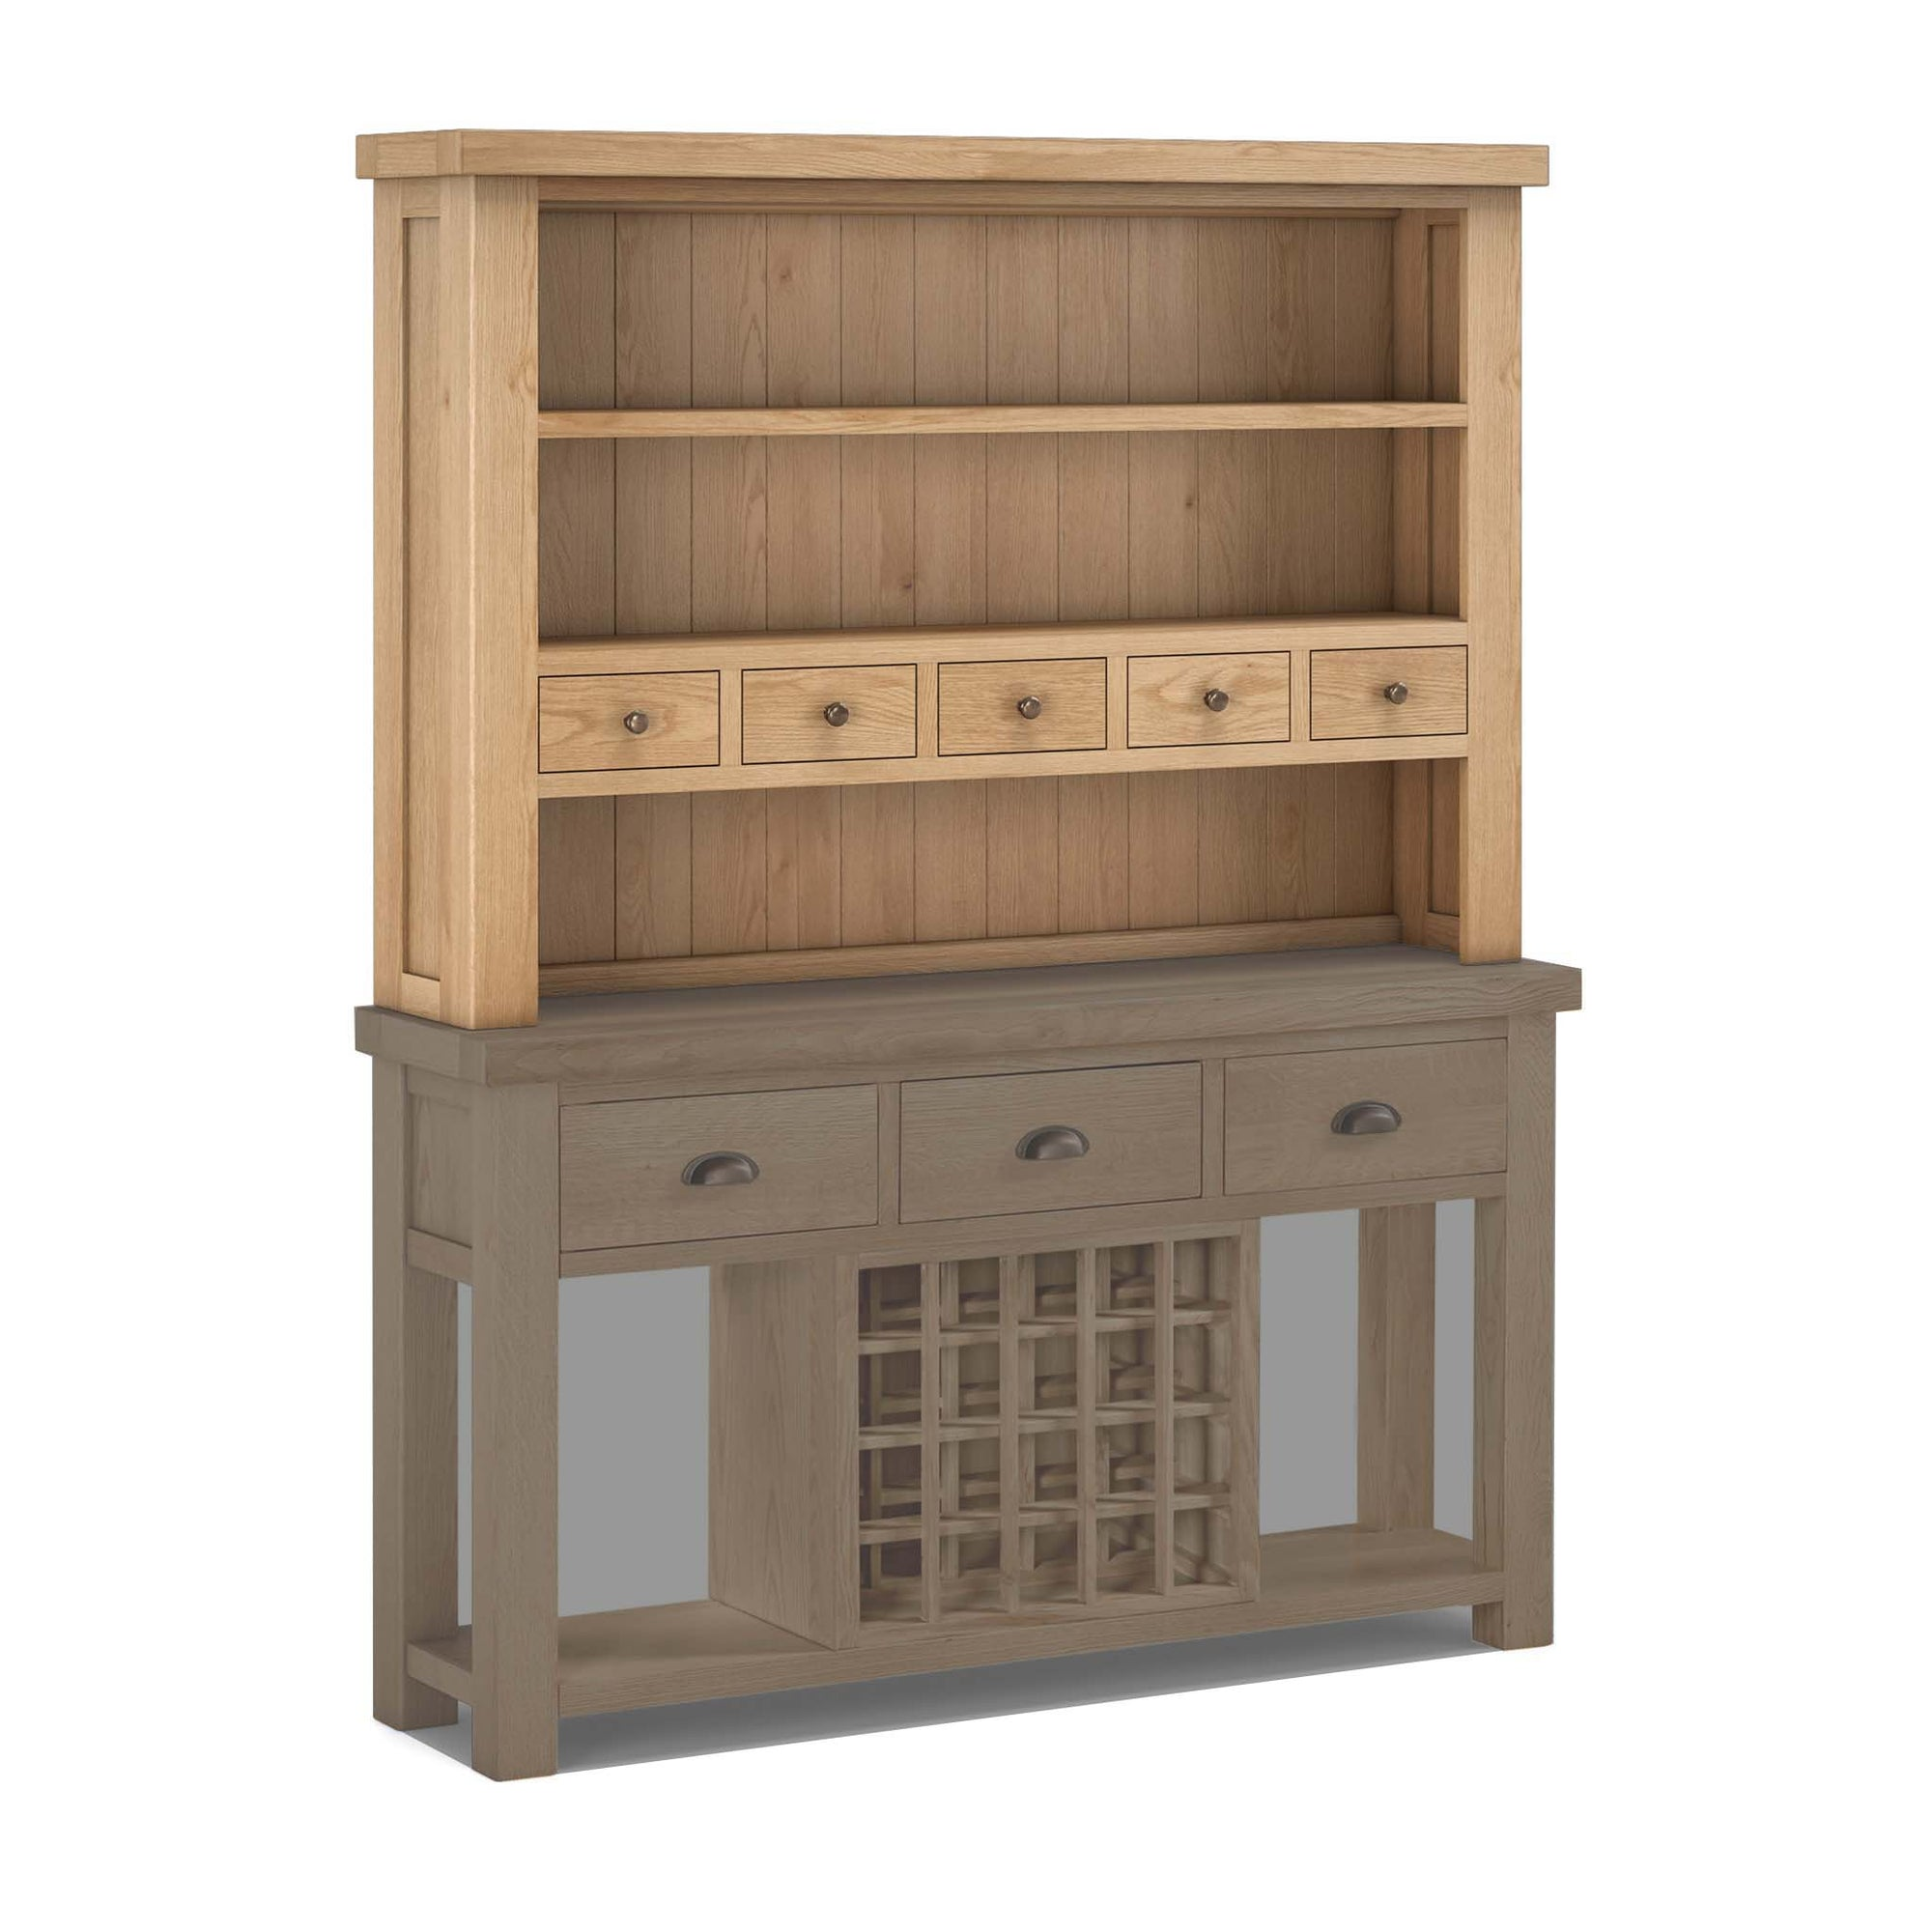 Malvern Oak Open Dresser Hutch